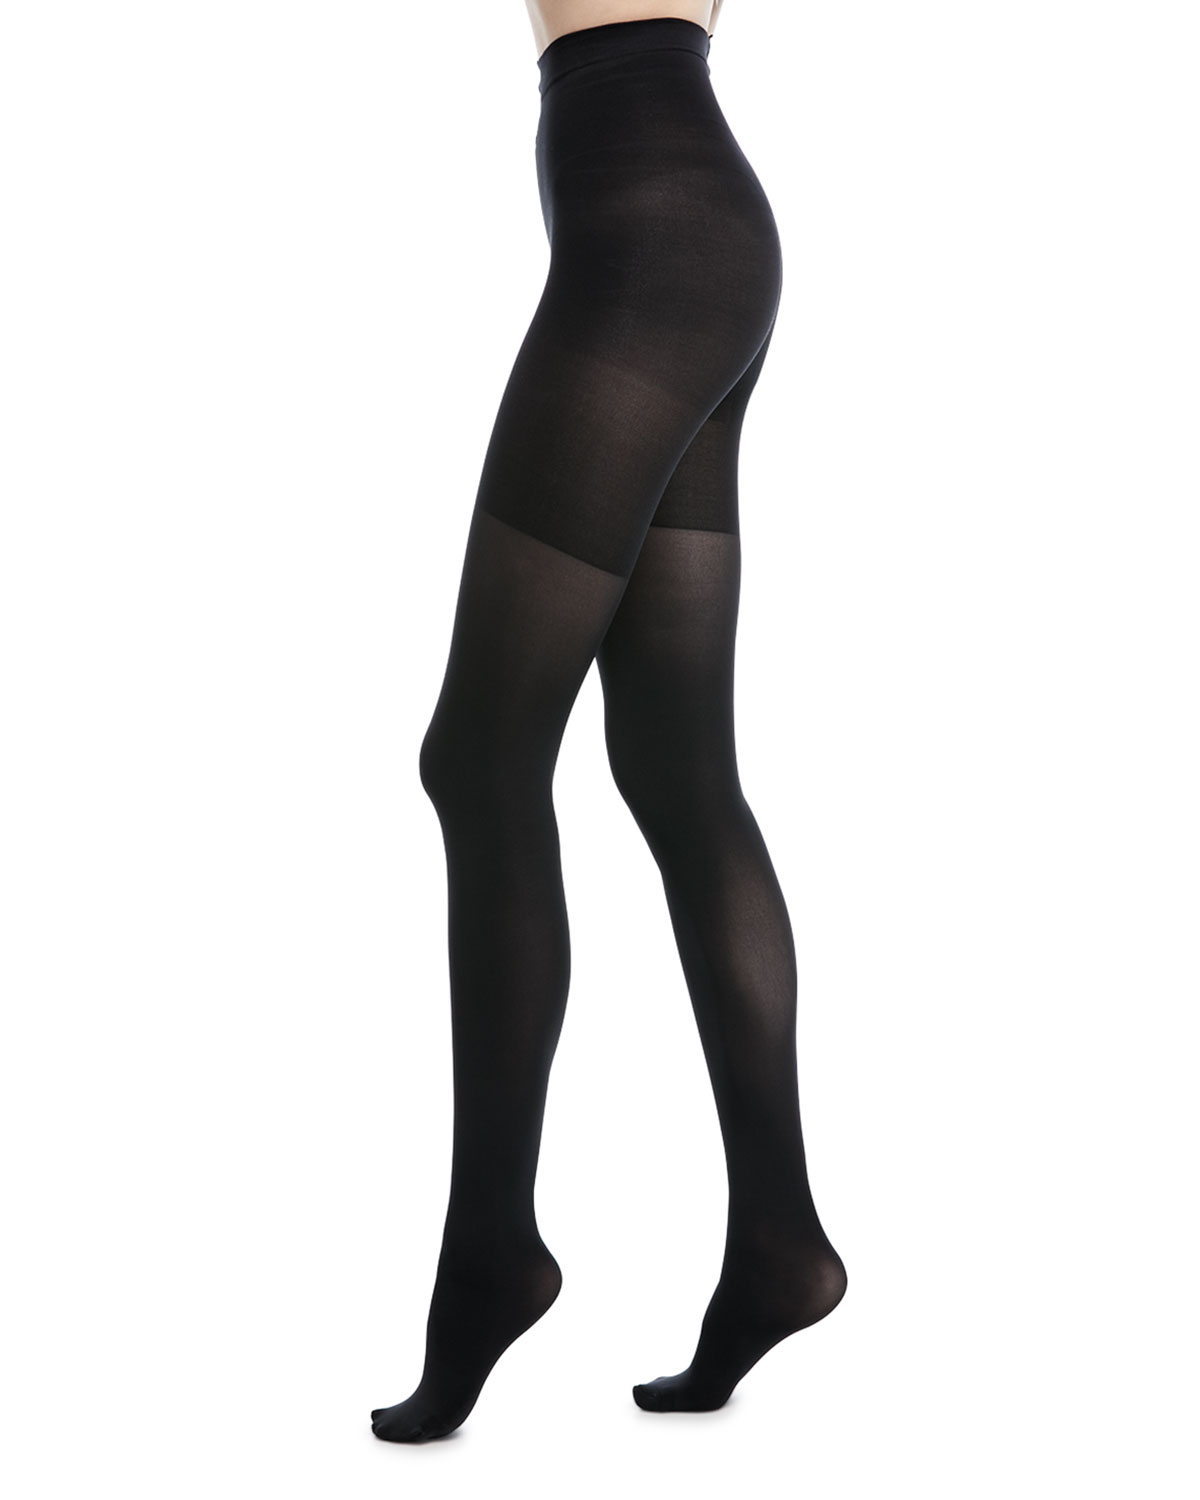 3cfccd83e2e Spanx Luxe Leg Mid-Thigh Tights